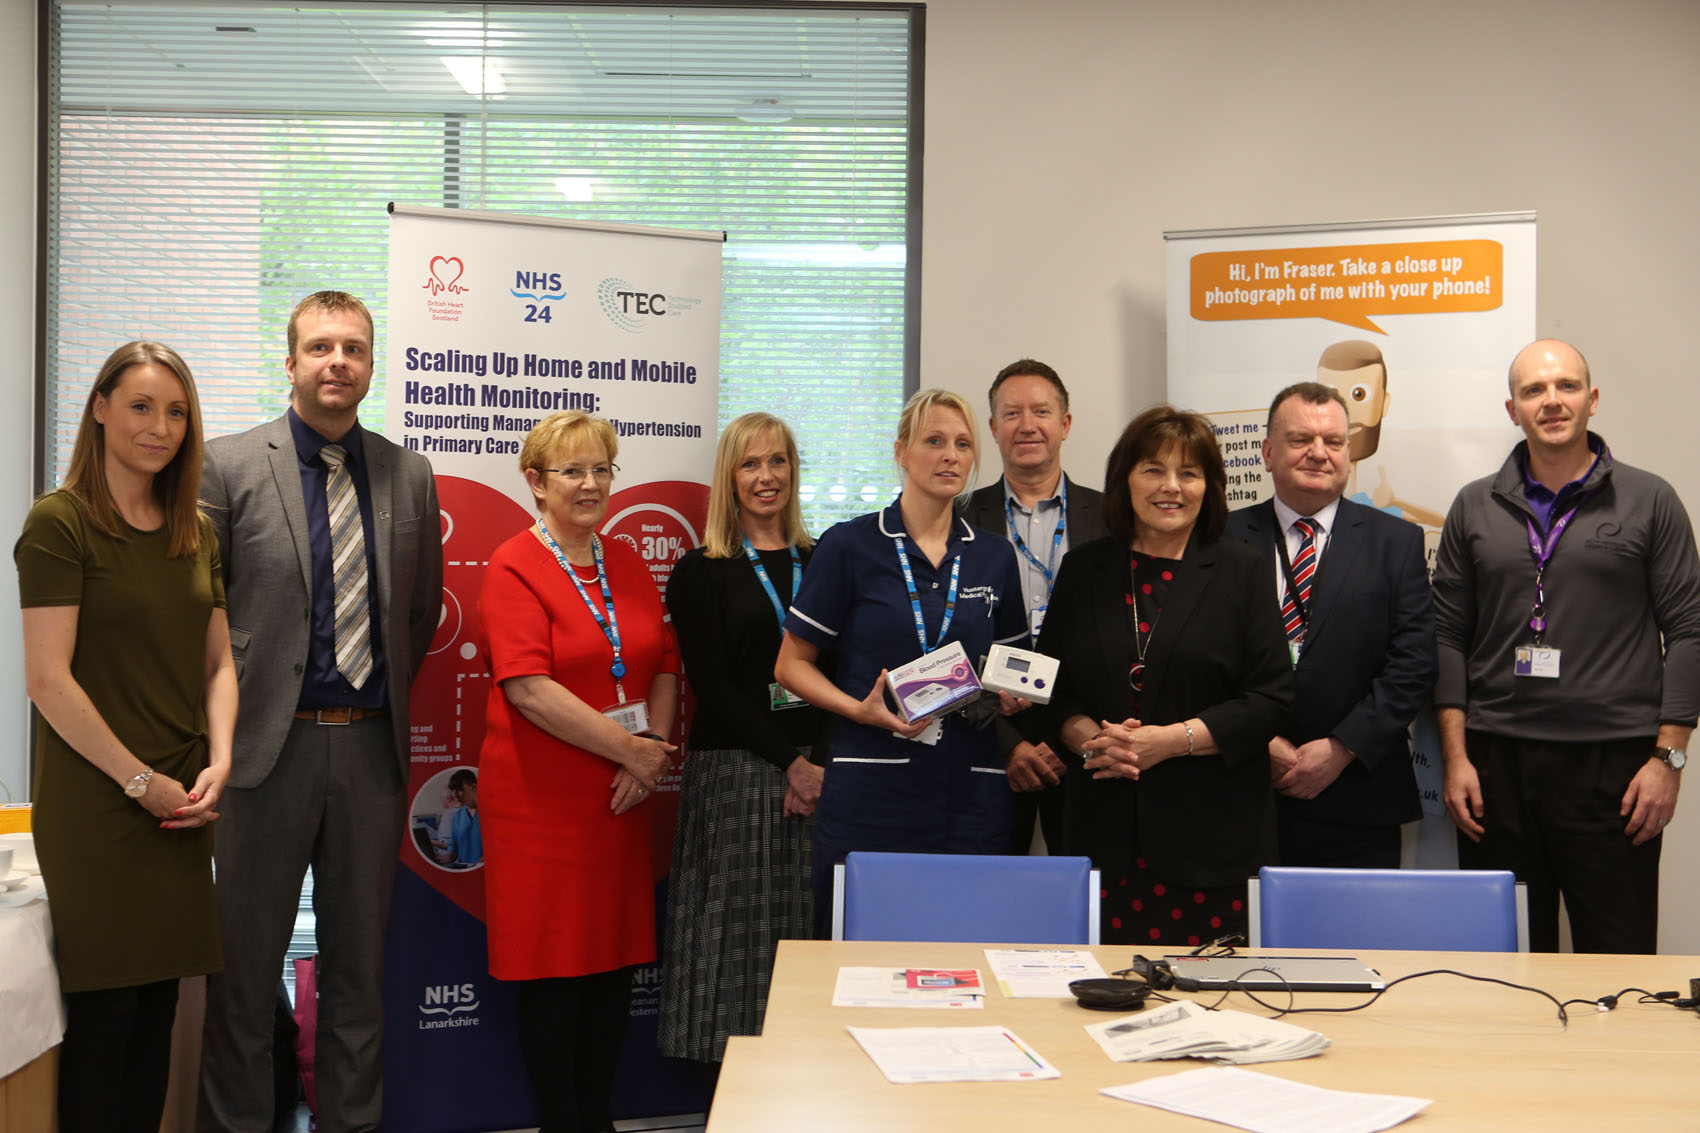 Exemplary Lanarkshire work in sharp focus as new technology scaled up across Scotland